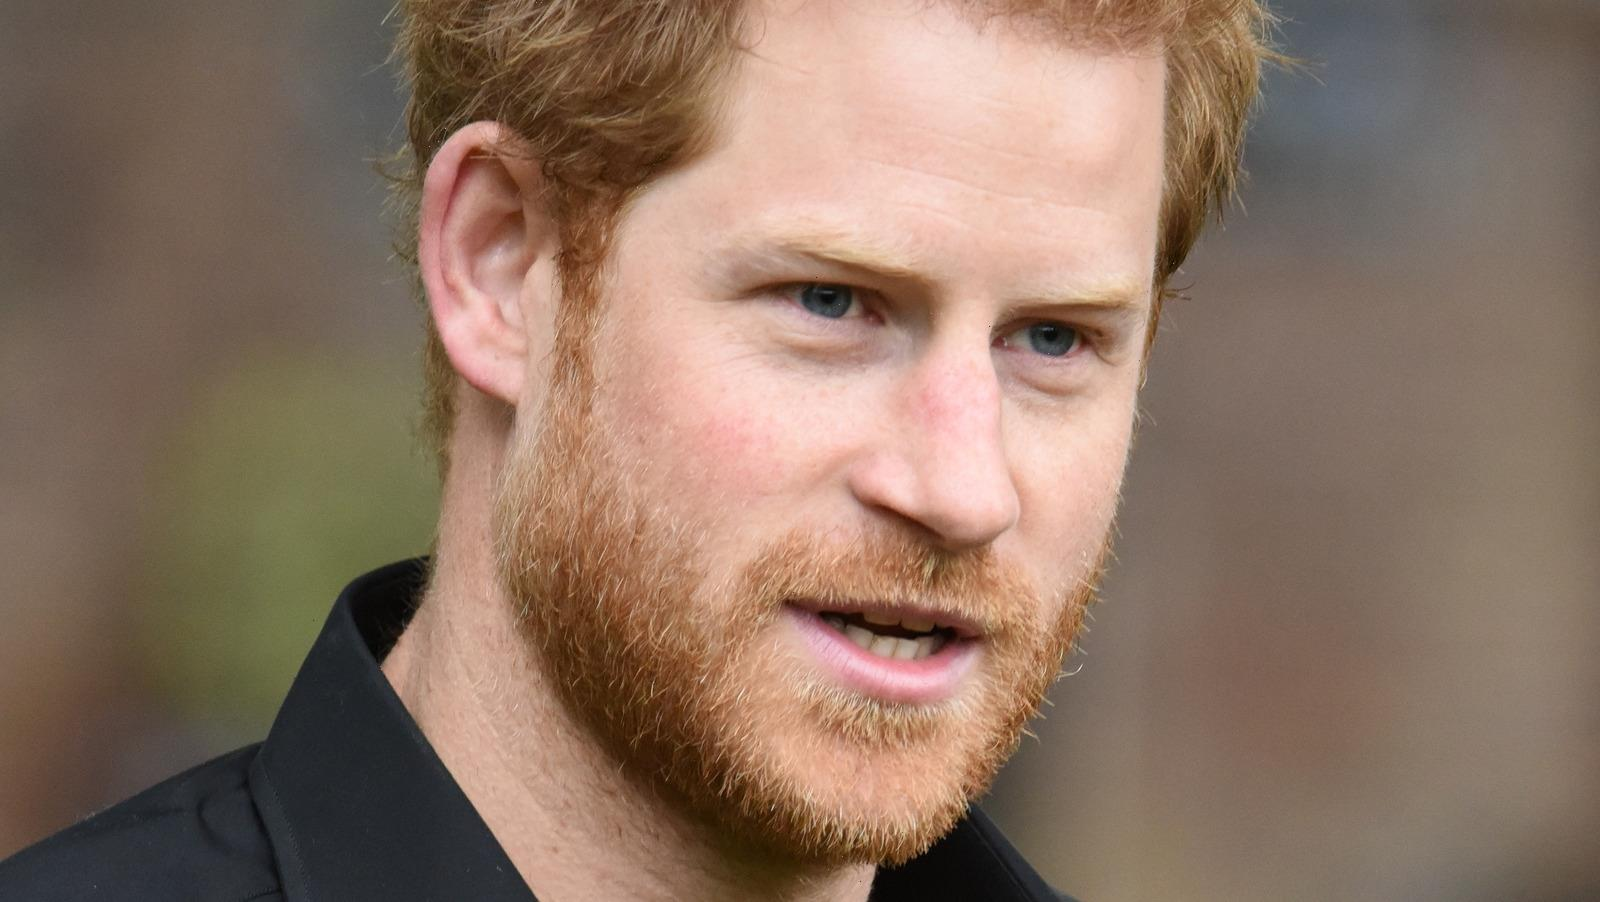 Palace Aides Reportedly Want Prince Harry And Meghan Markle To Do This